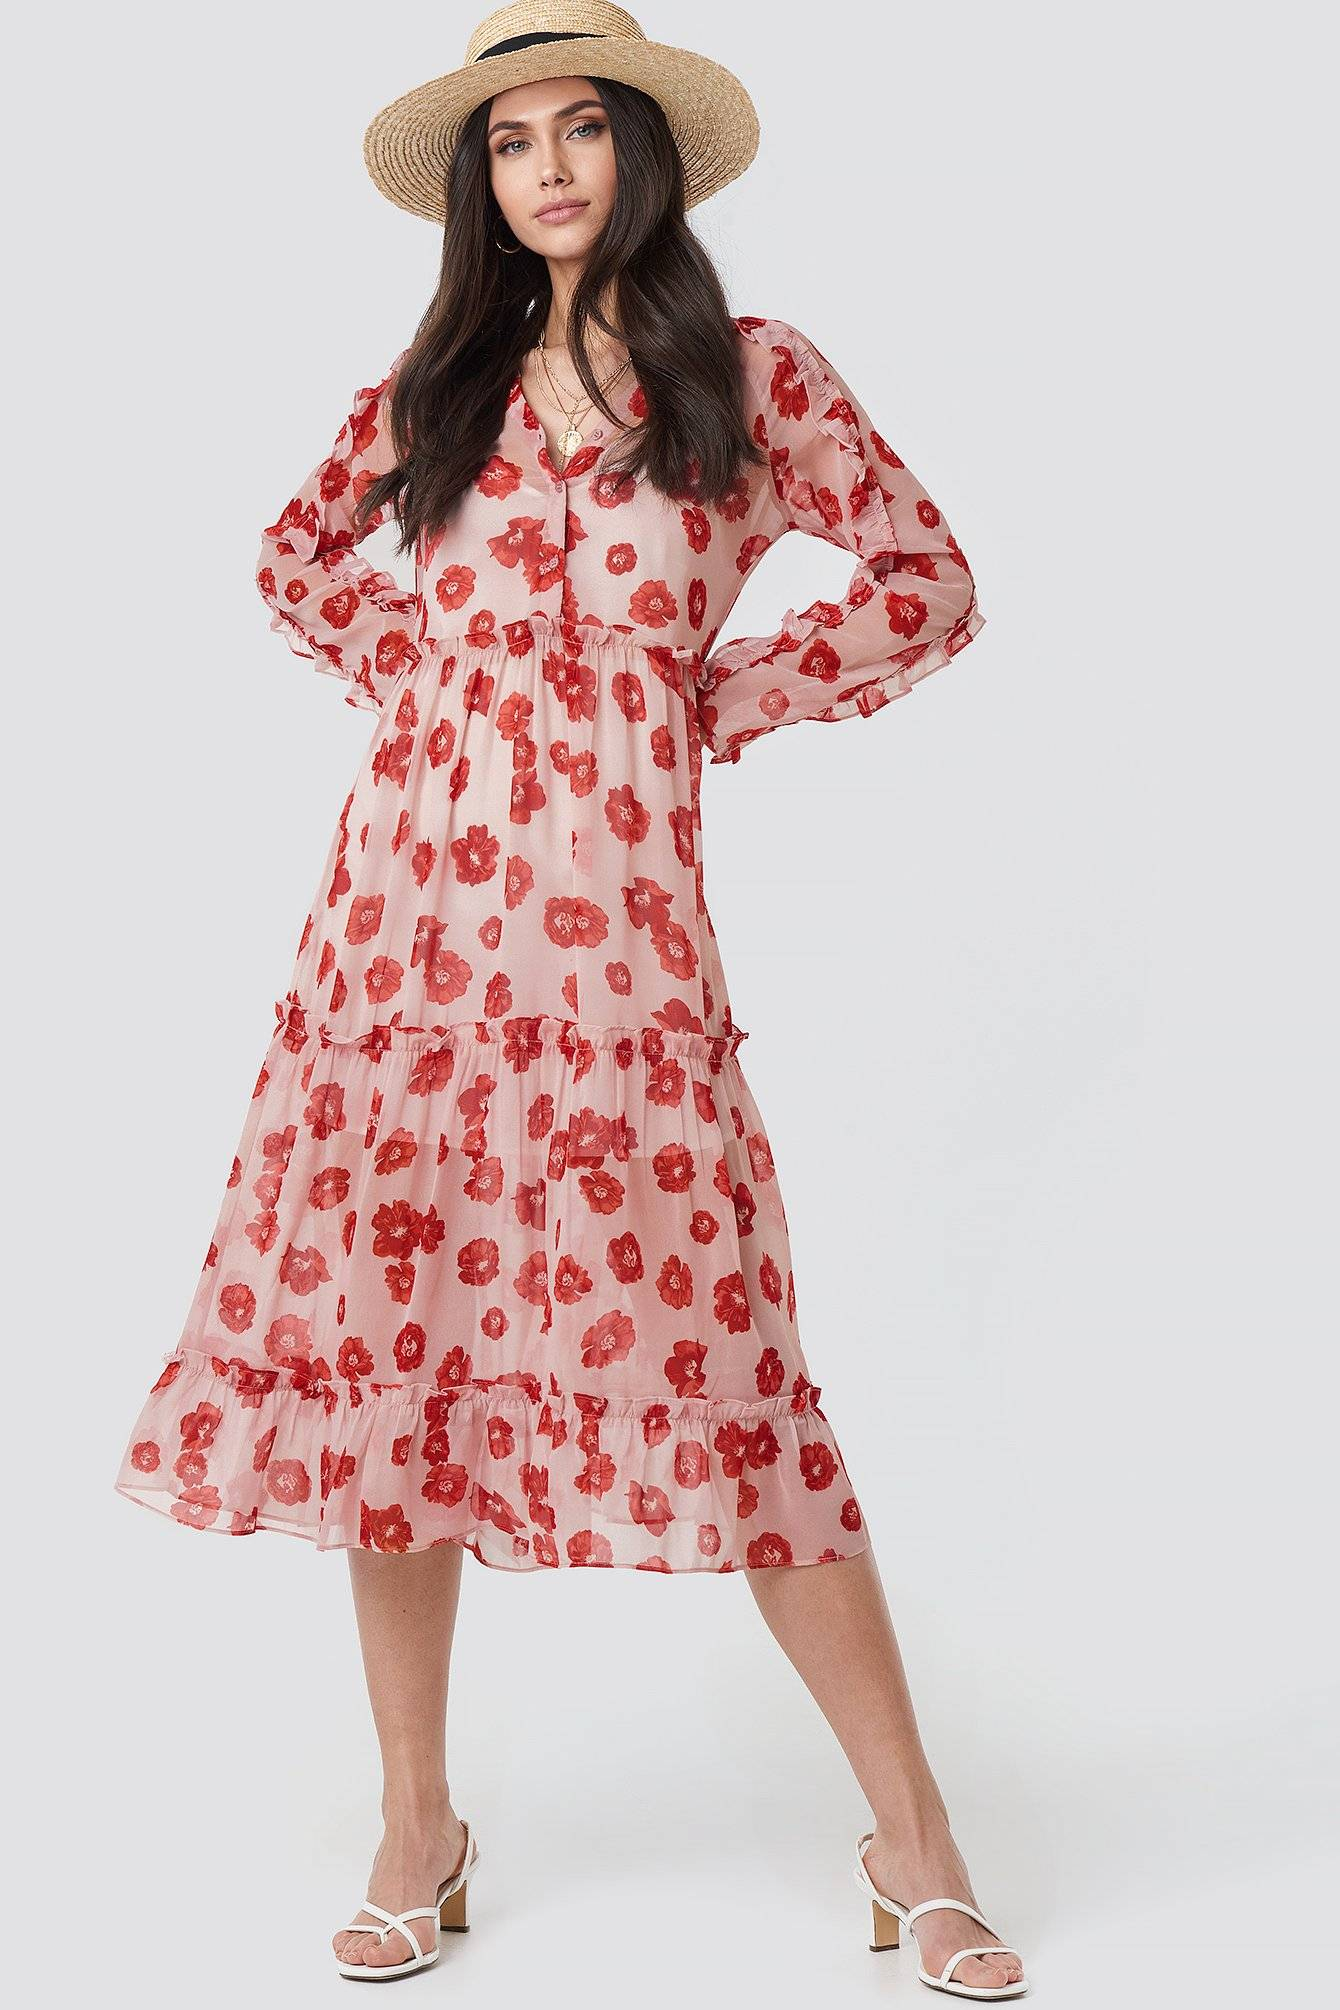 Image of NA-KD Boho Printed Flounce Chiffon Dress - Pink,Red